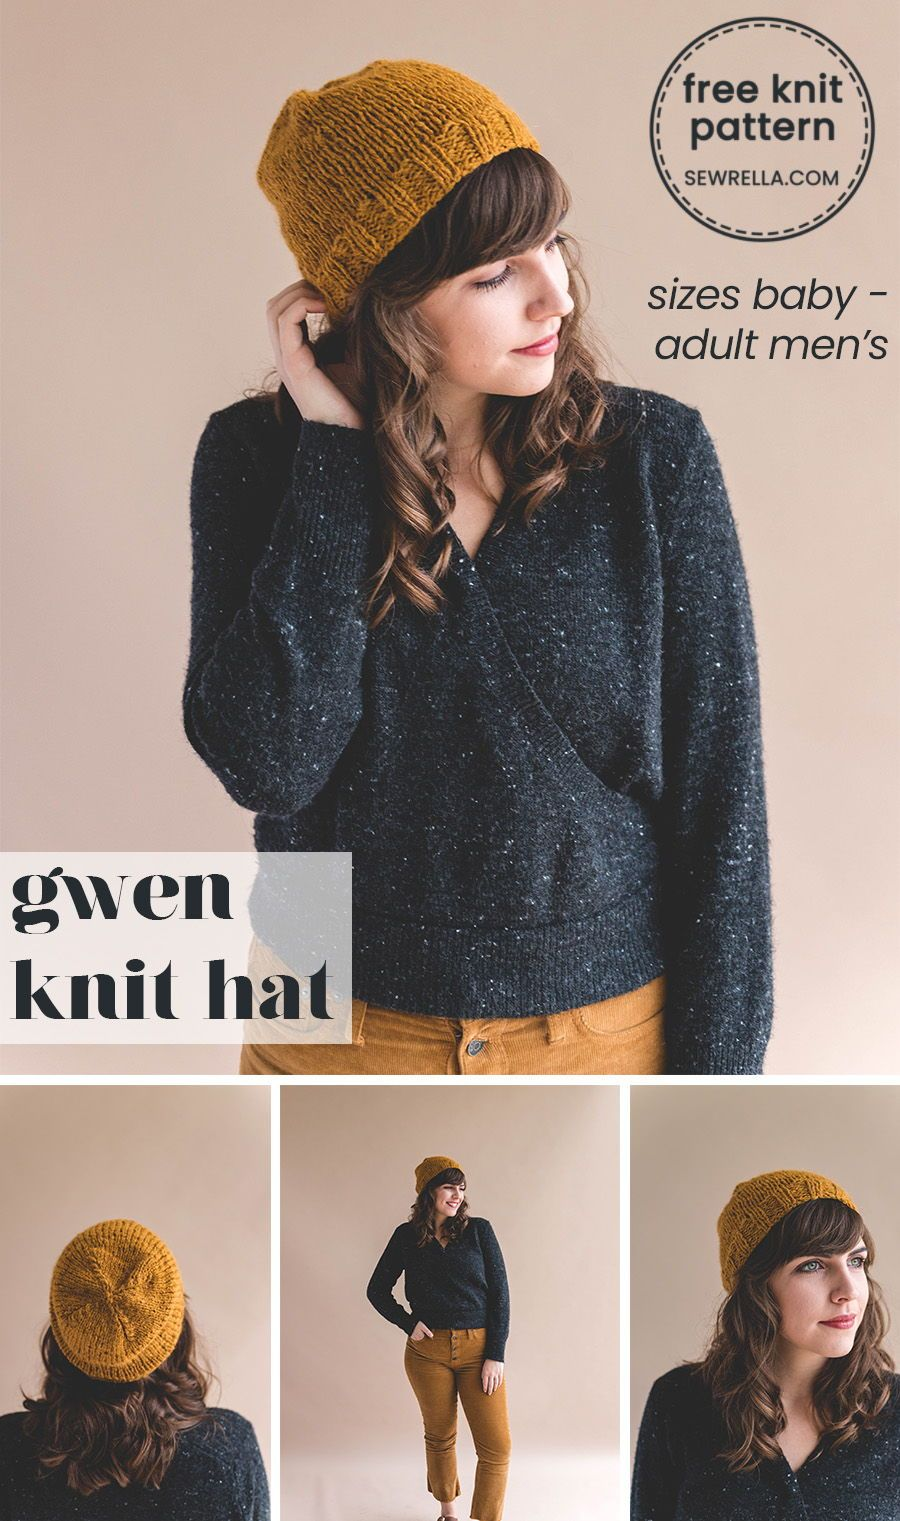 271c3052f1b This beginner friendly slouchy knit hat pattern is a quick and easy one!  Its unisex